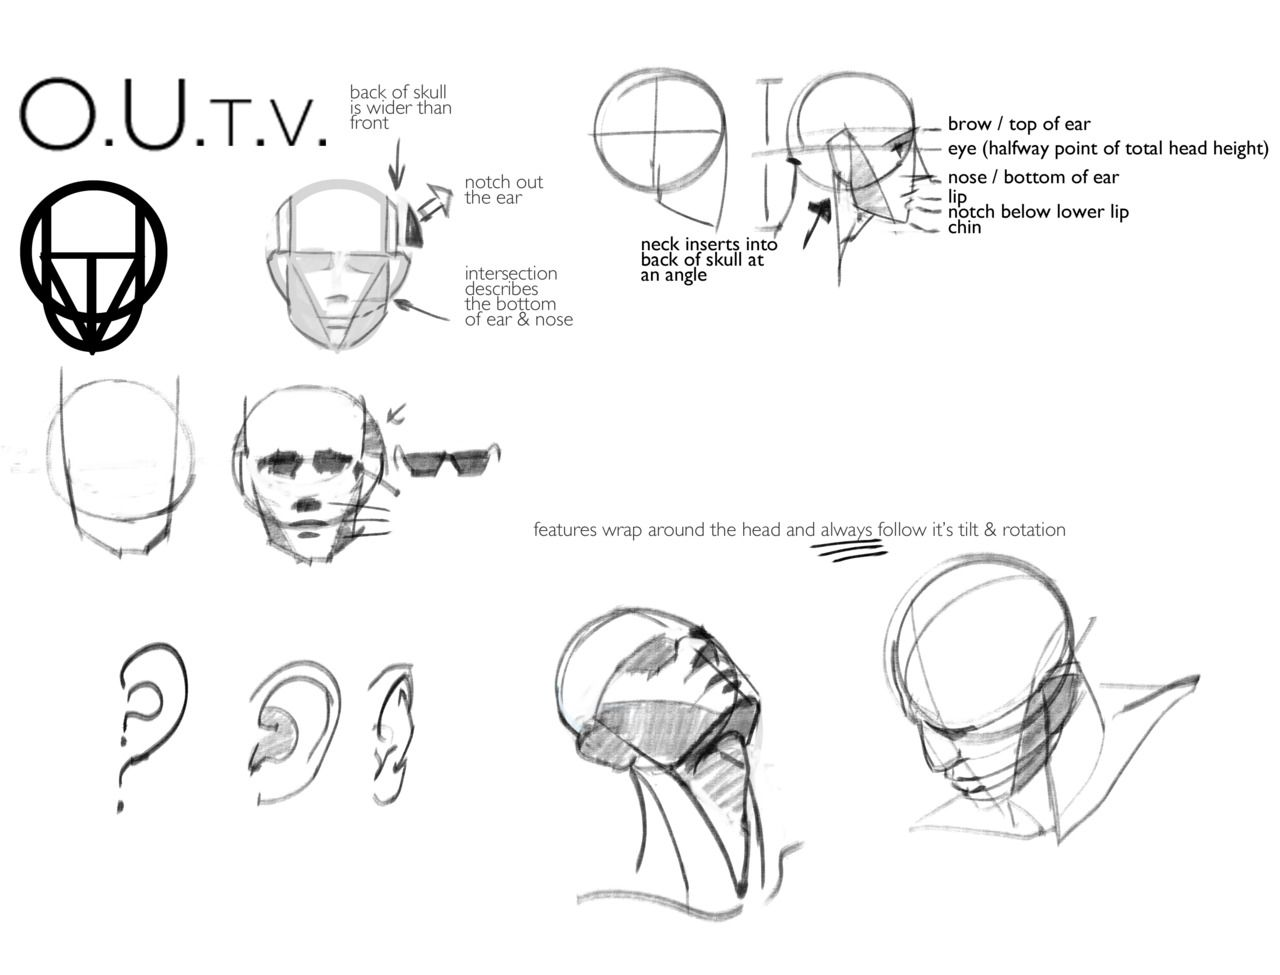 17 Best Images About Drawing Heads & Faces On Pinterest The Head, Anatomy  And Head